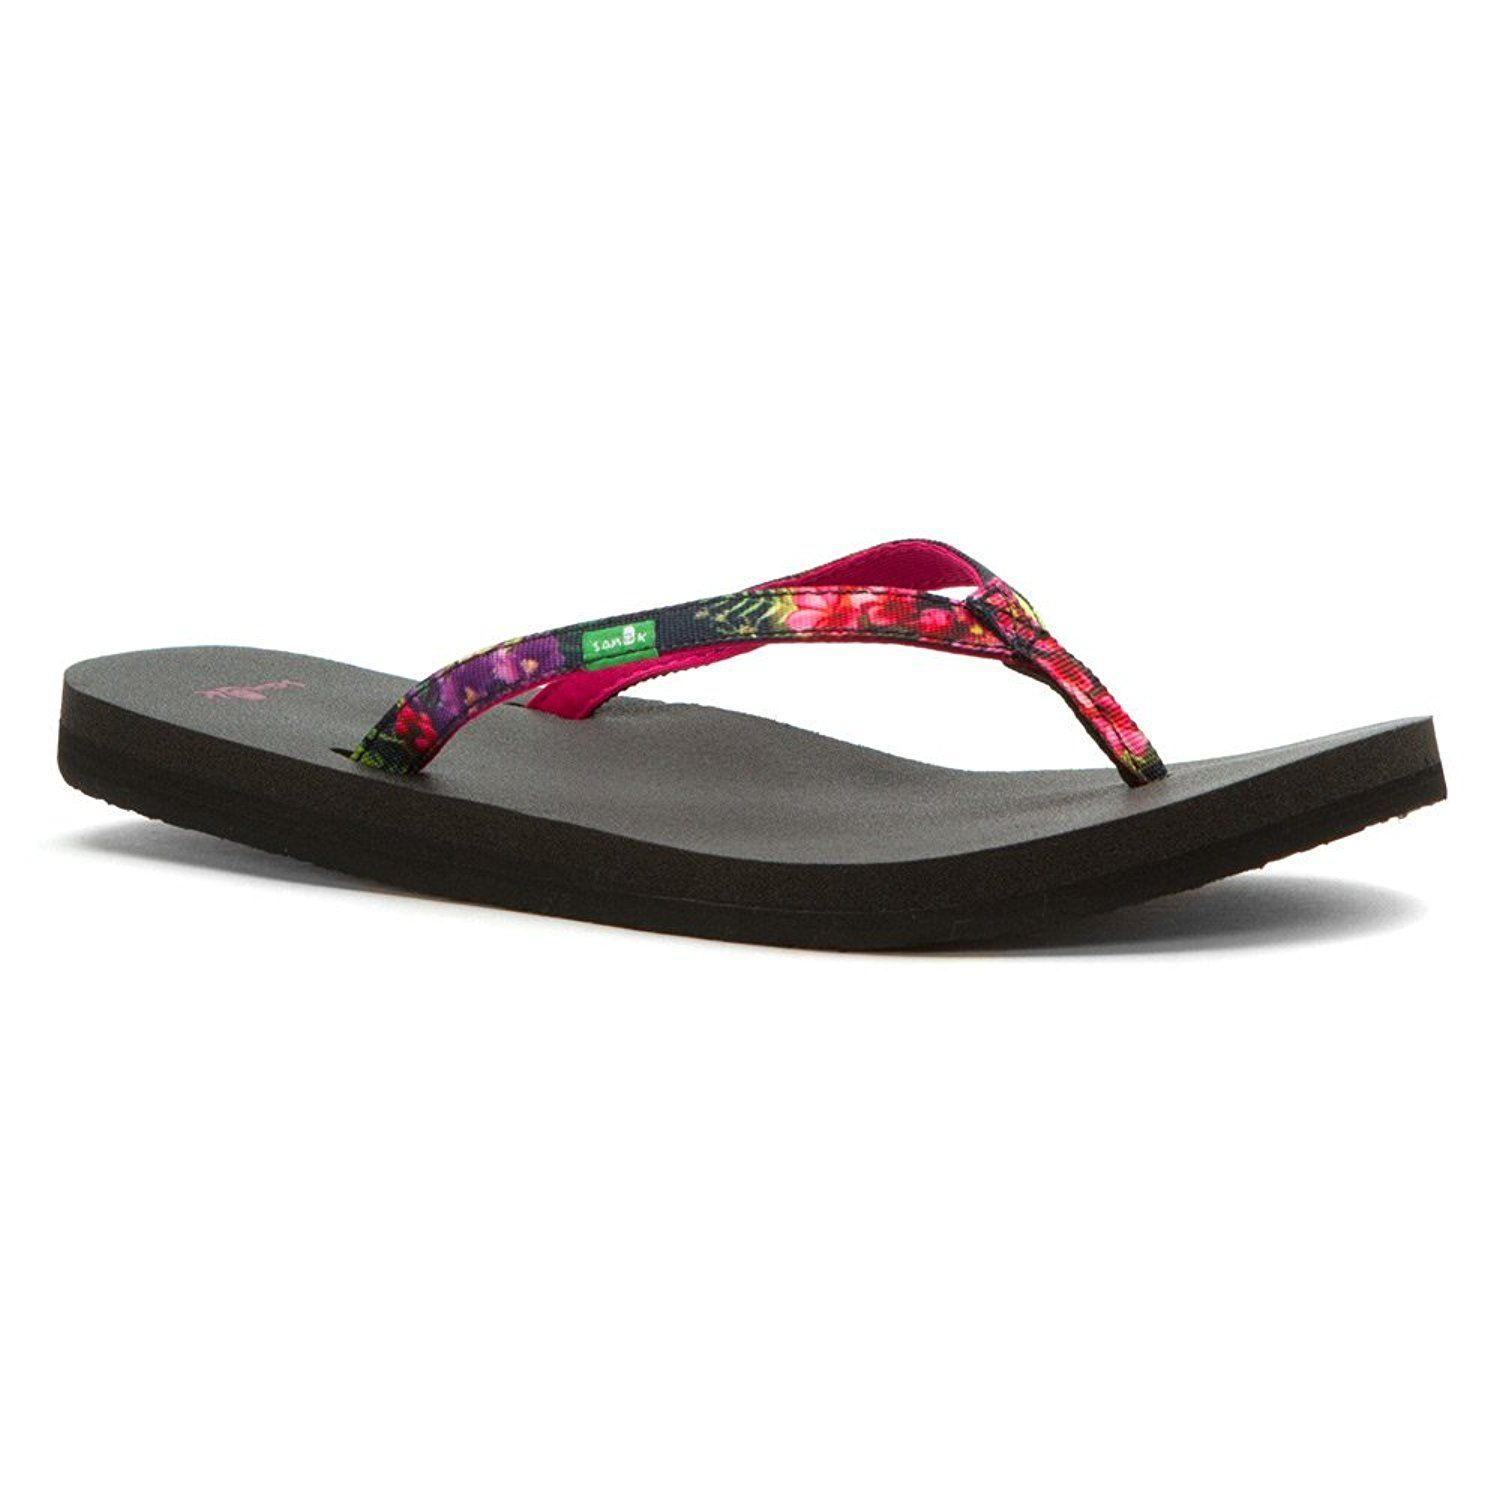 Sanuk Yoga Shoes Amazon: Sanuk Womens Yoga Joy Amazon Sandals -- Review More